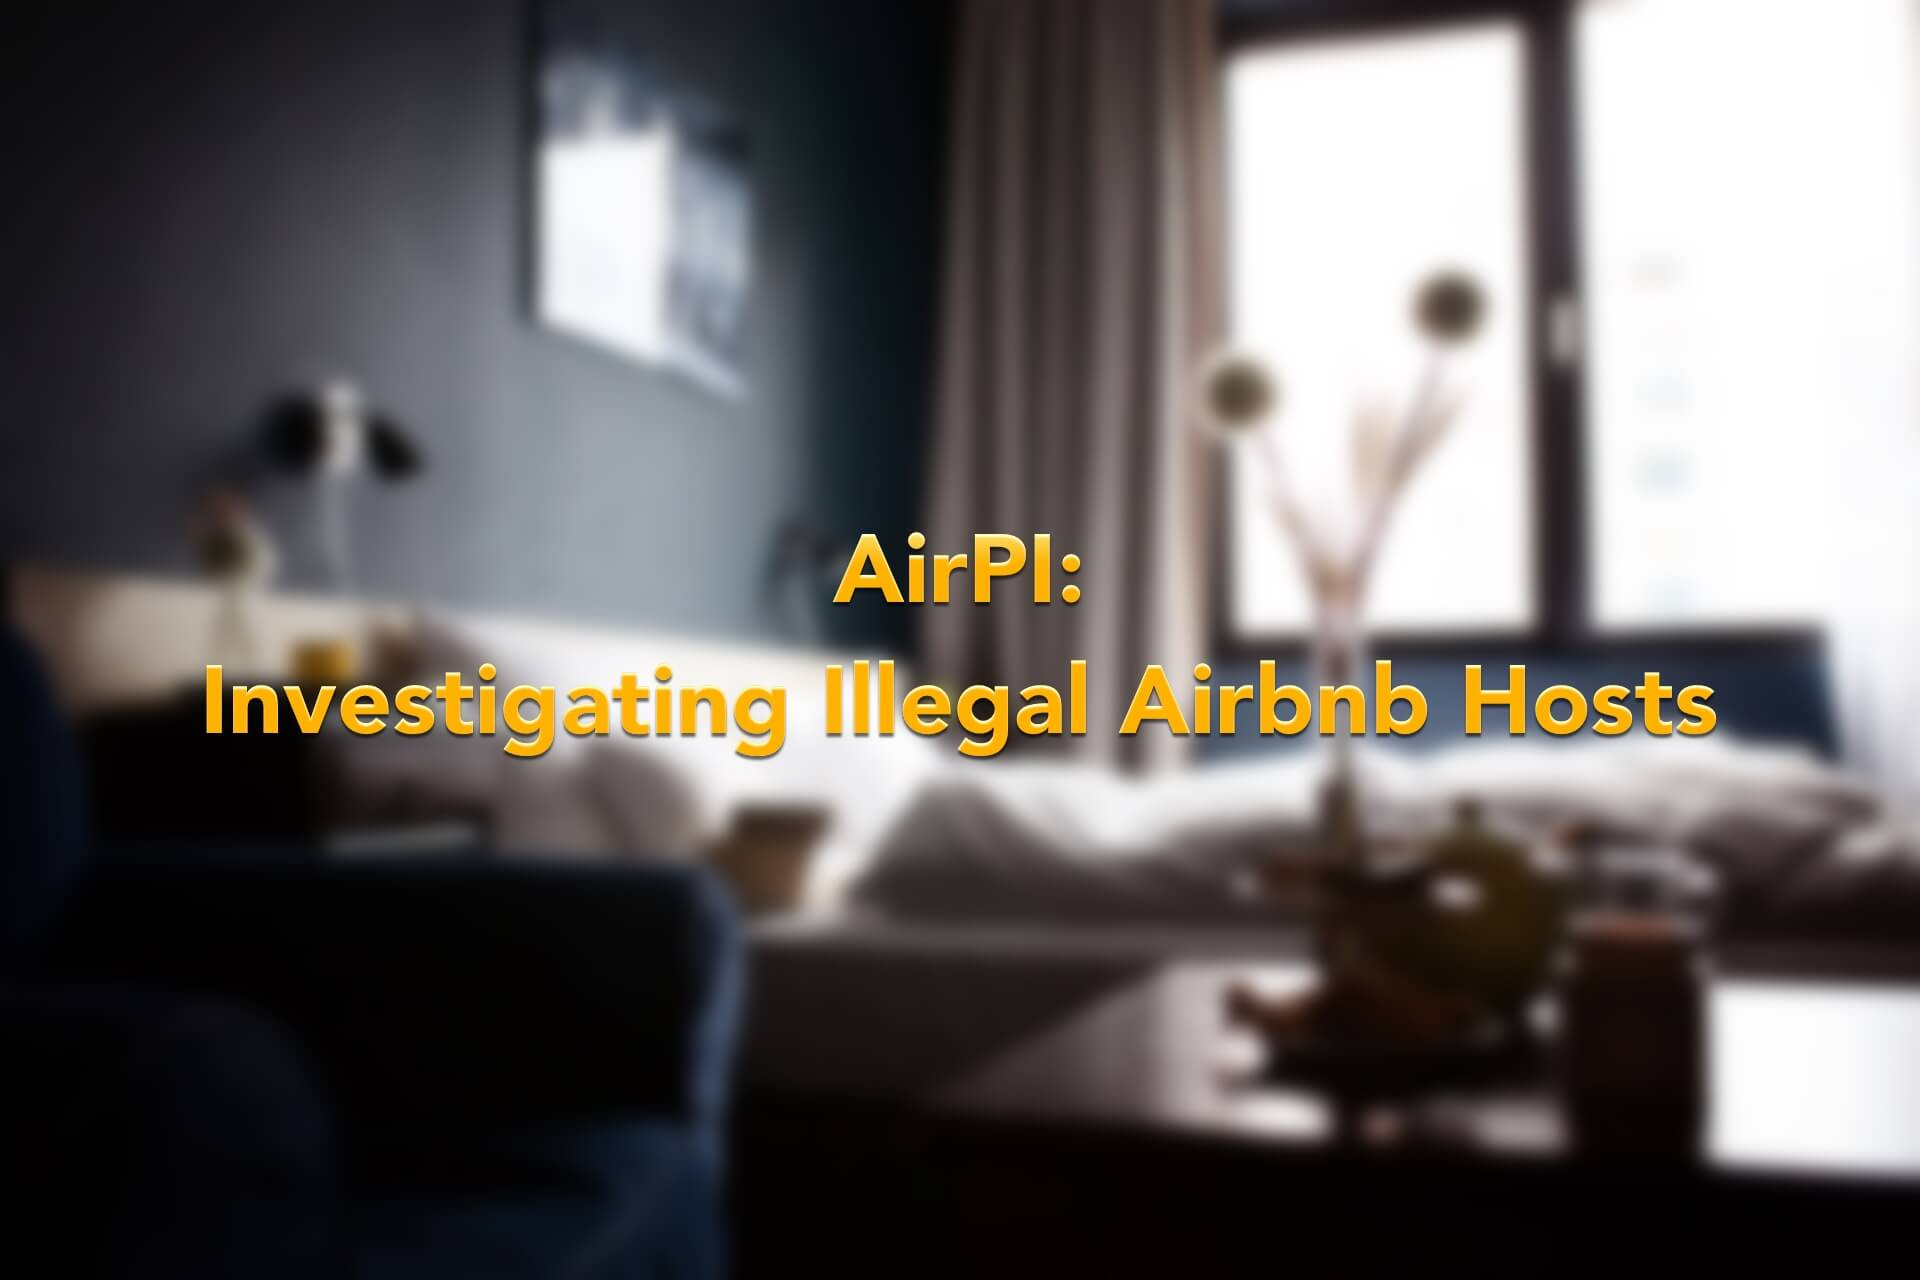 AirPI: Investigating Illegal Airbnb Hosts